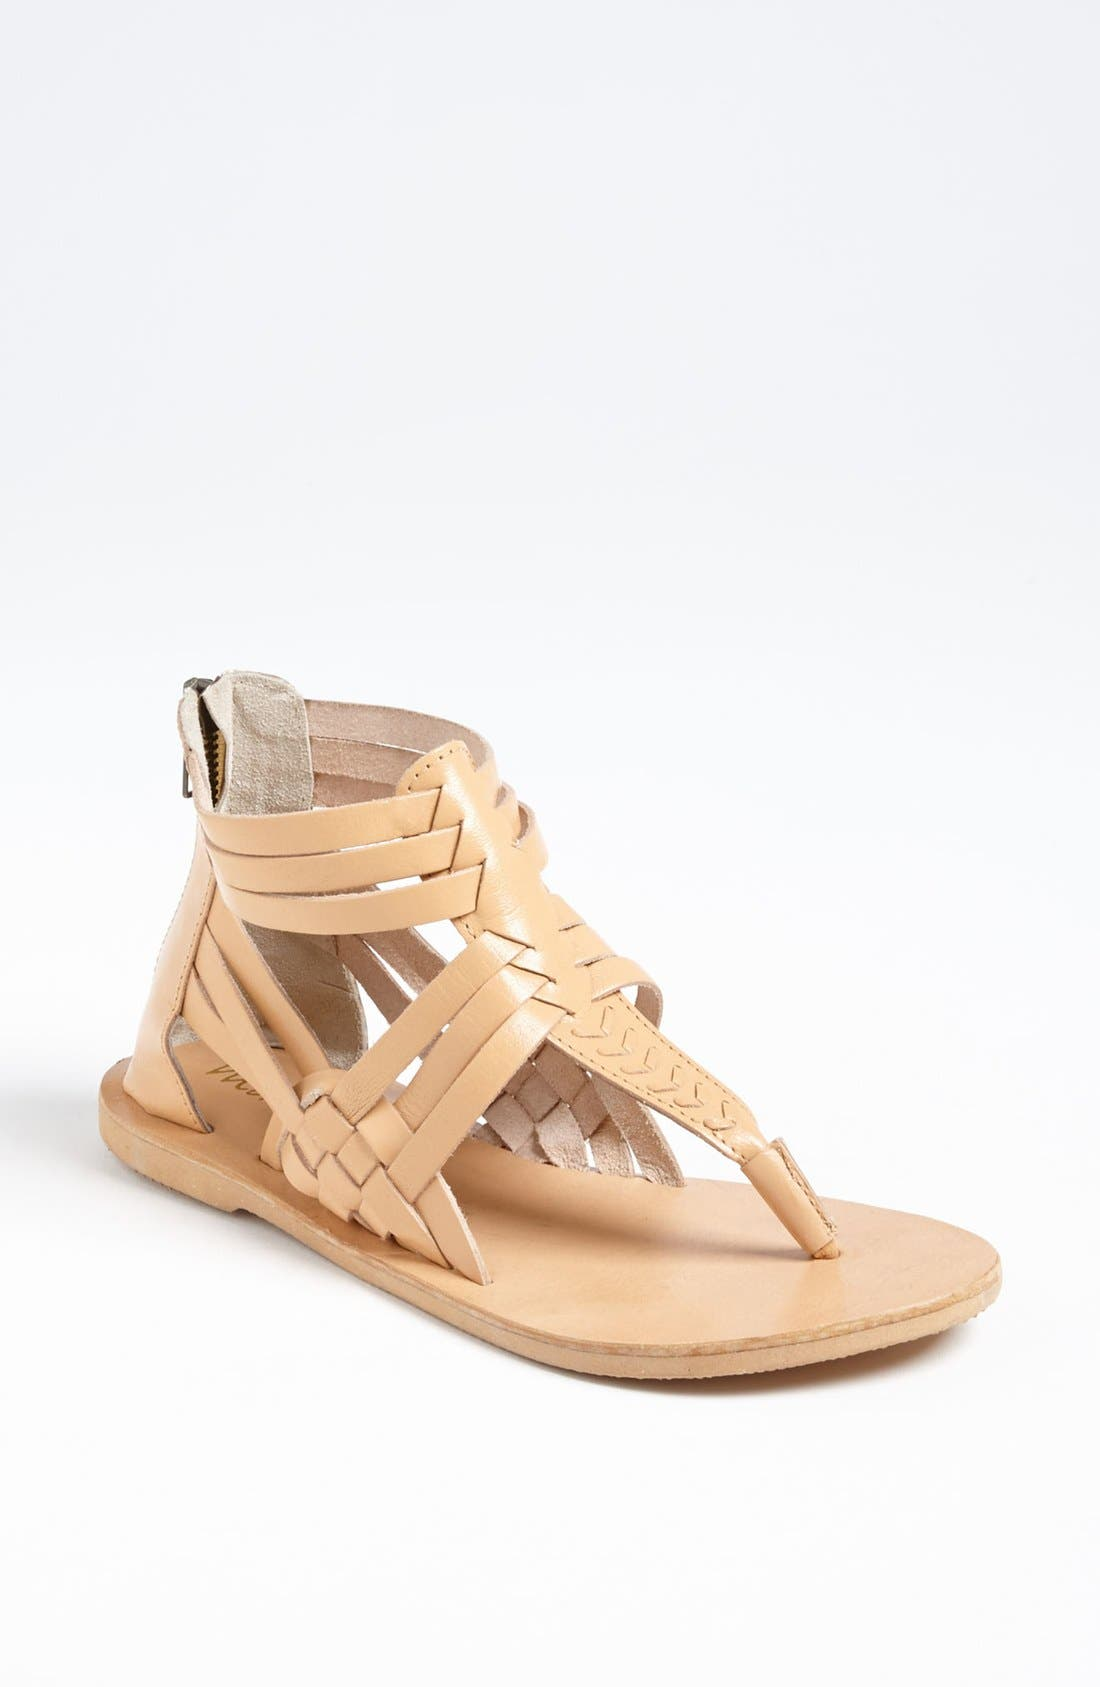 Alternate Image 1 Selected - Matisse 'Adona' Sandal